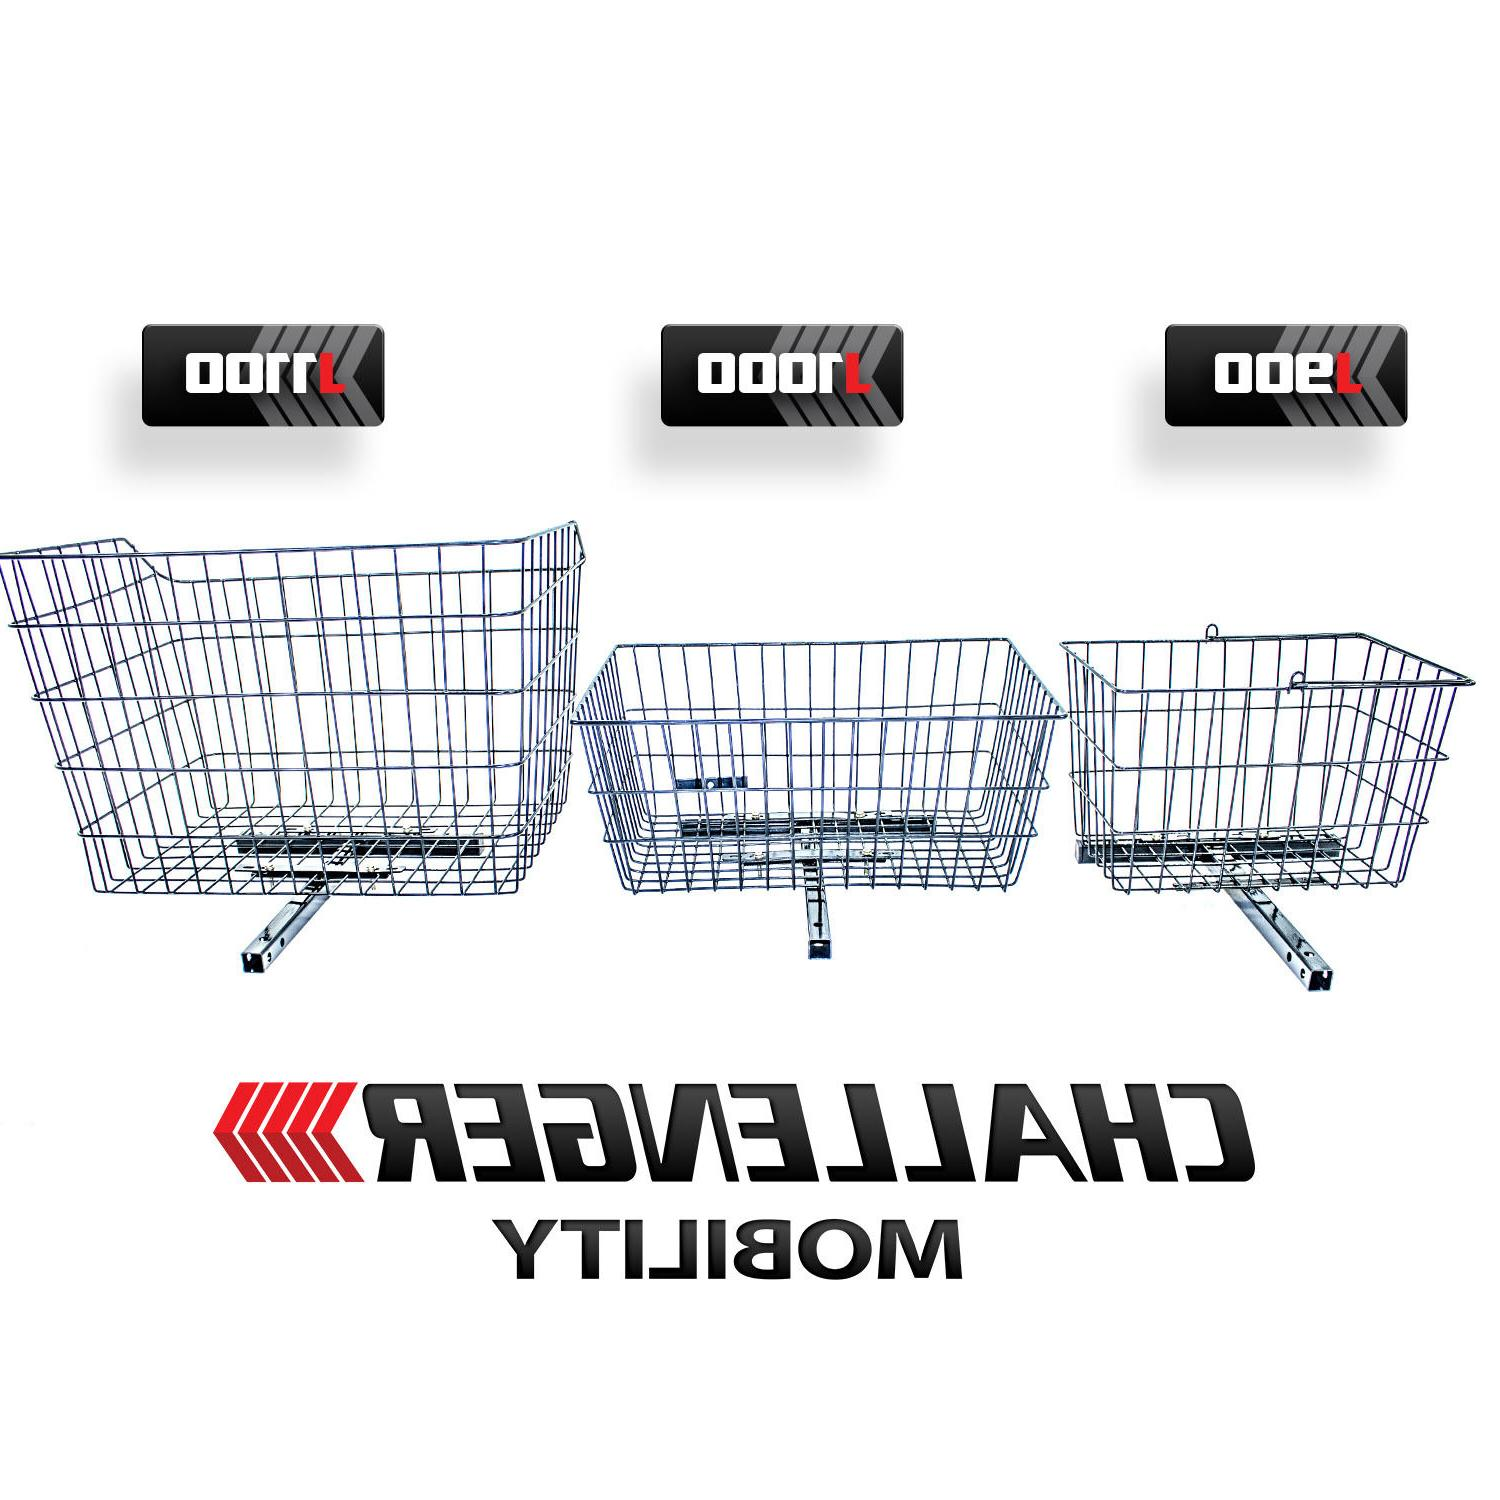 XL REAR BASKET Mobility J1000 Pride, Golden, Drive